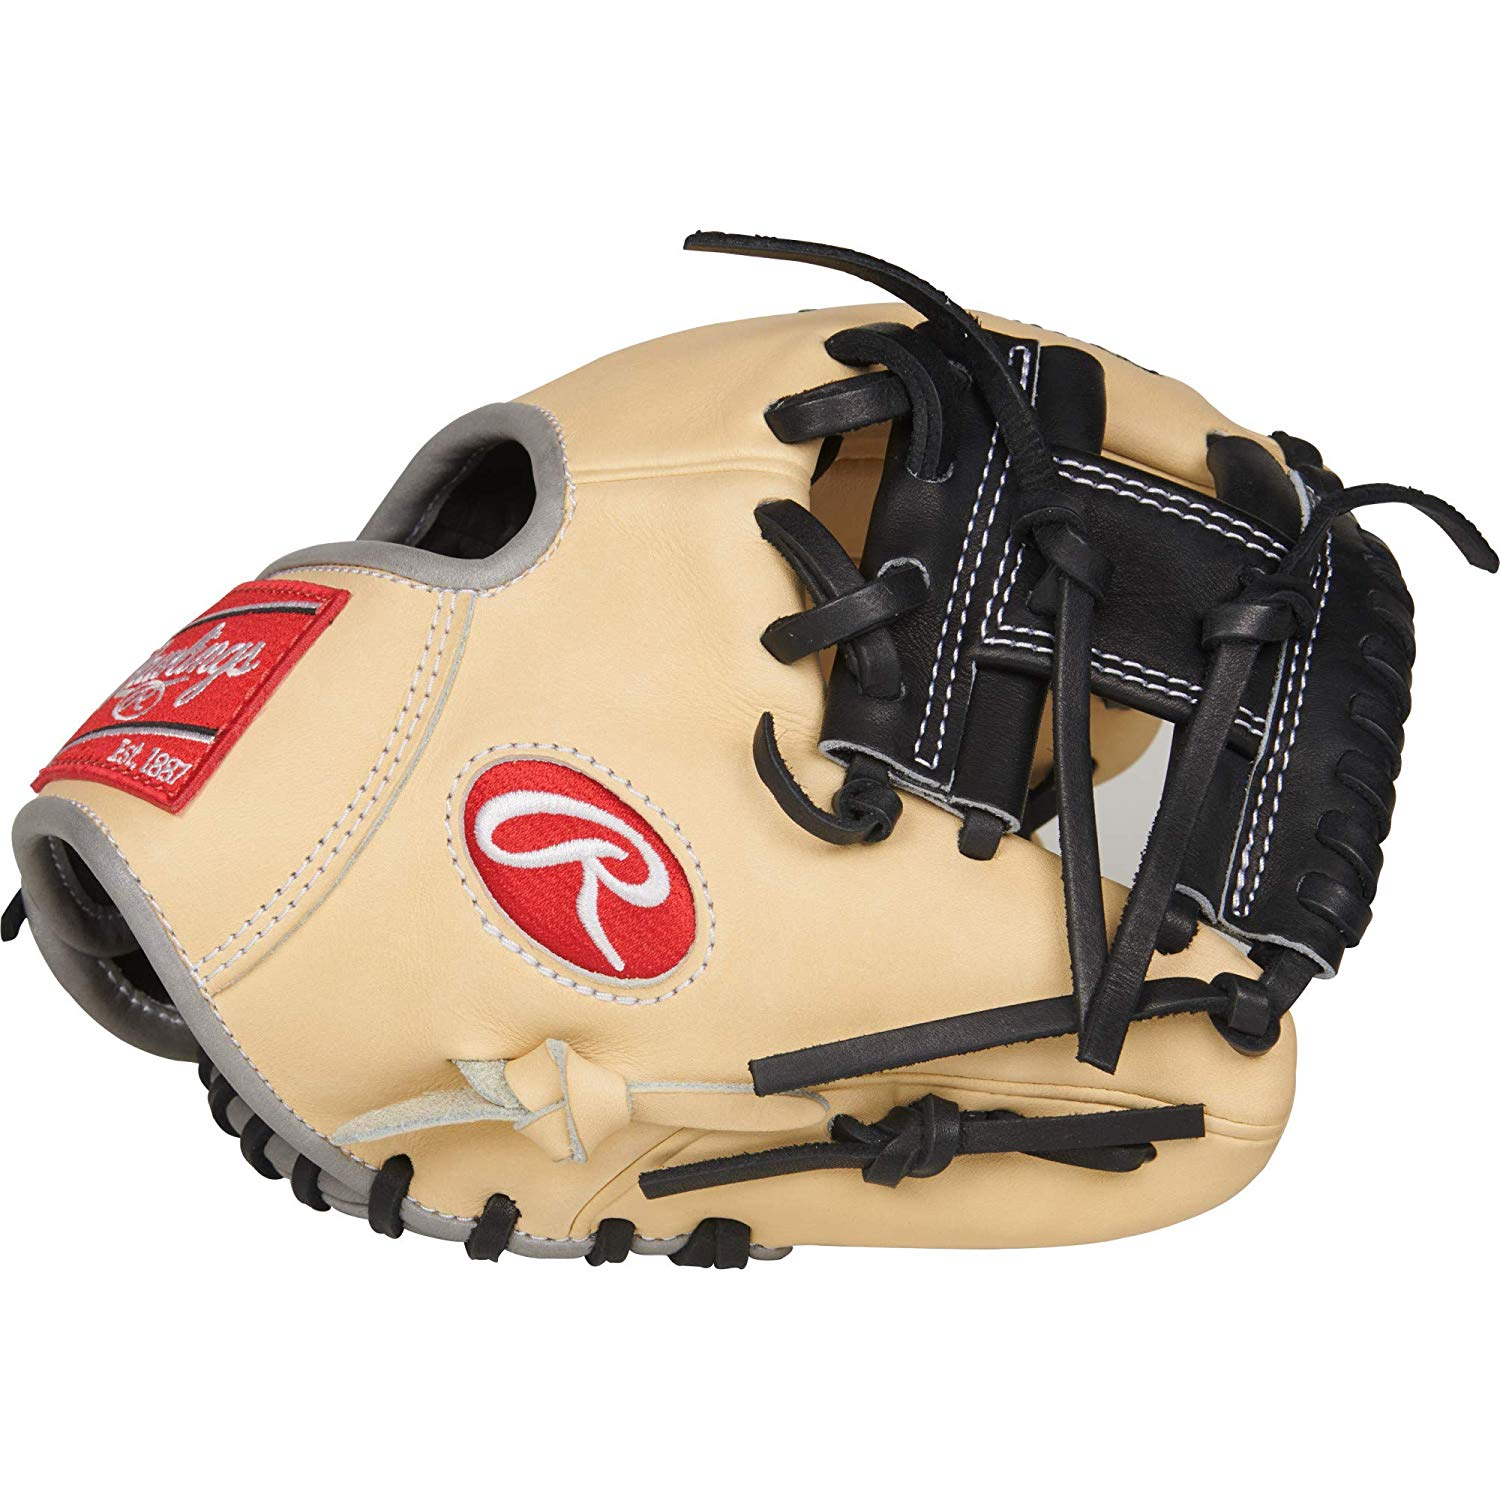 rawlings-heart-the-hide-9-5-inch-pro200tr-2c-training-baseball-glove-right-hand-throw PRO200TR-2C-RightHandThrow  083321523588 Practice glove designed to improve defensive skills and awareness Constructed from